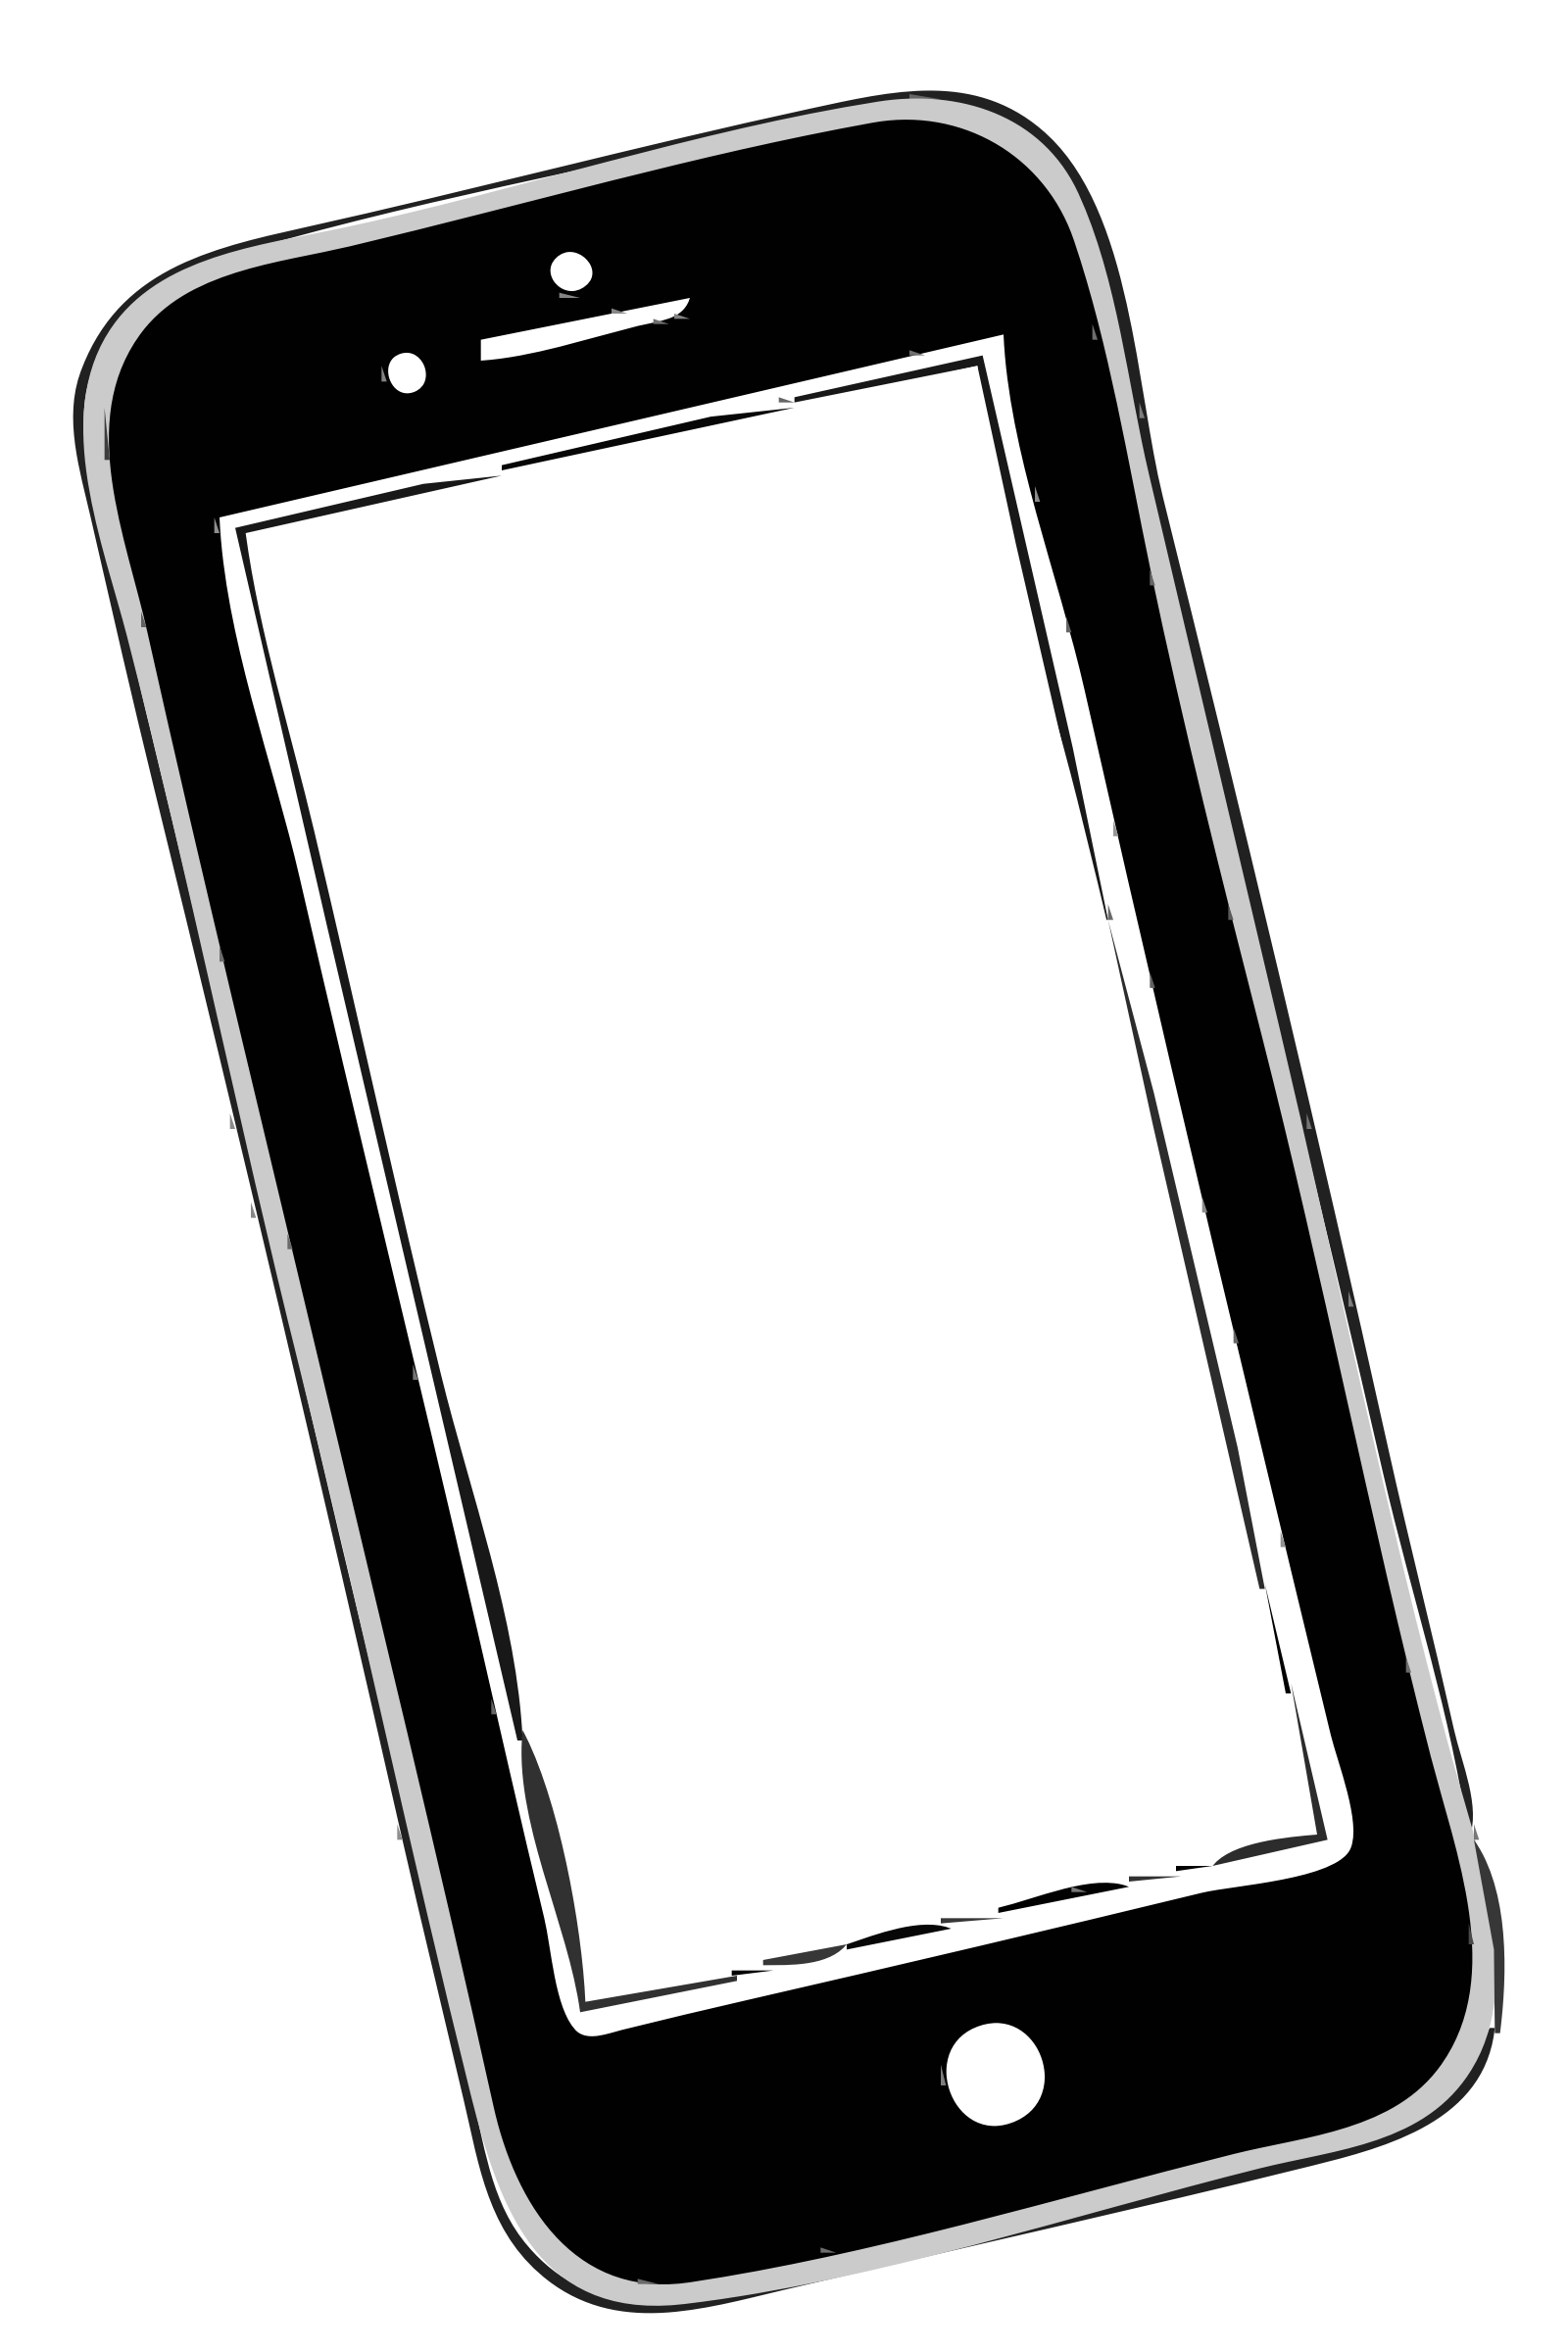 sending I-Phone to open clipart.org by Jim Lawler